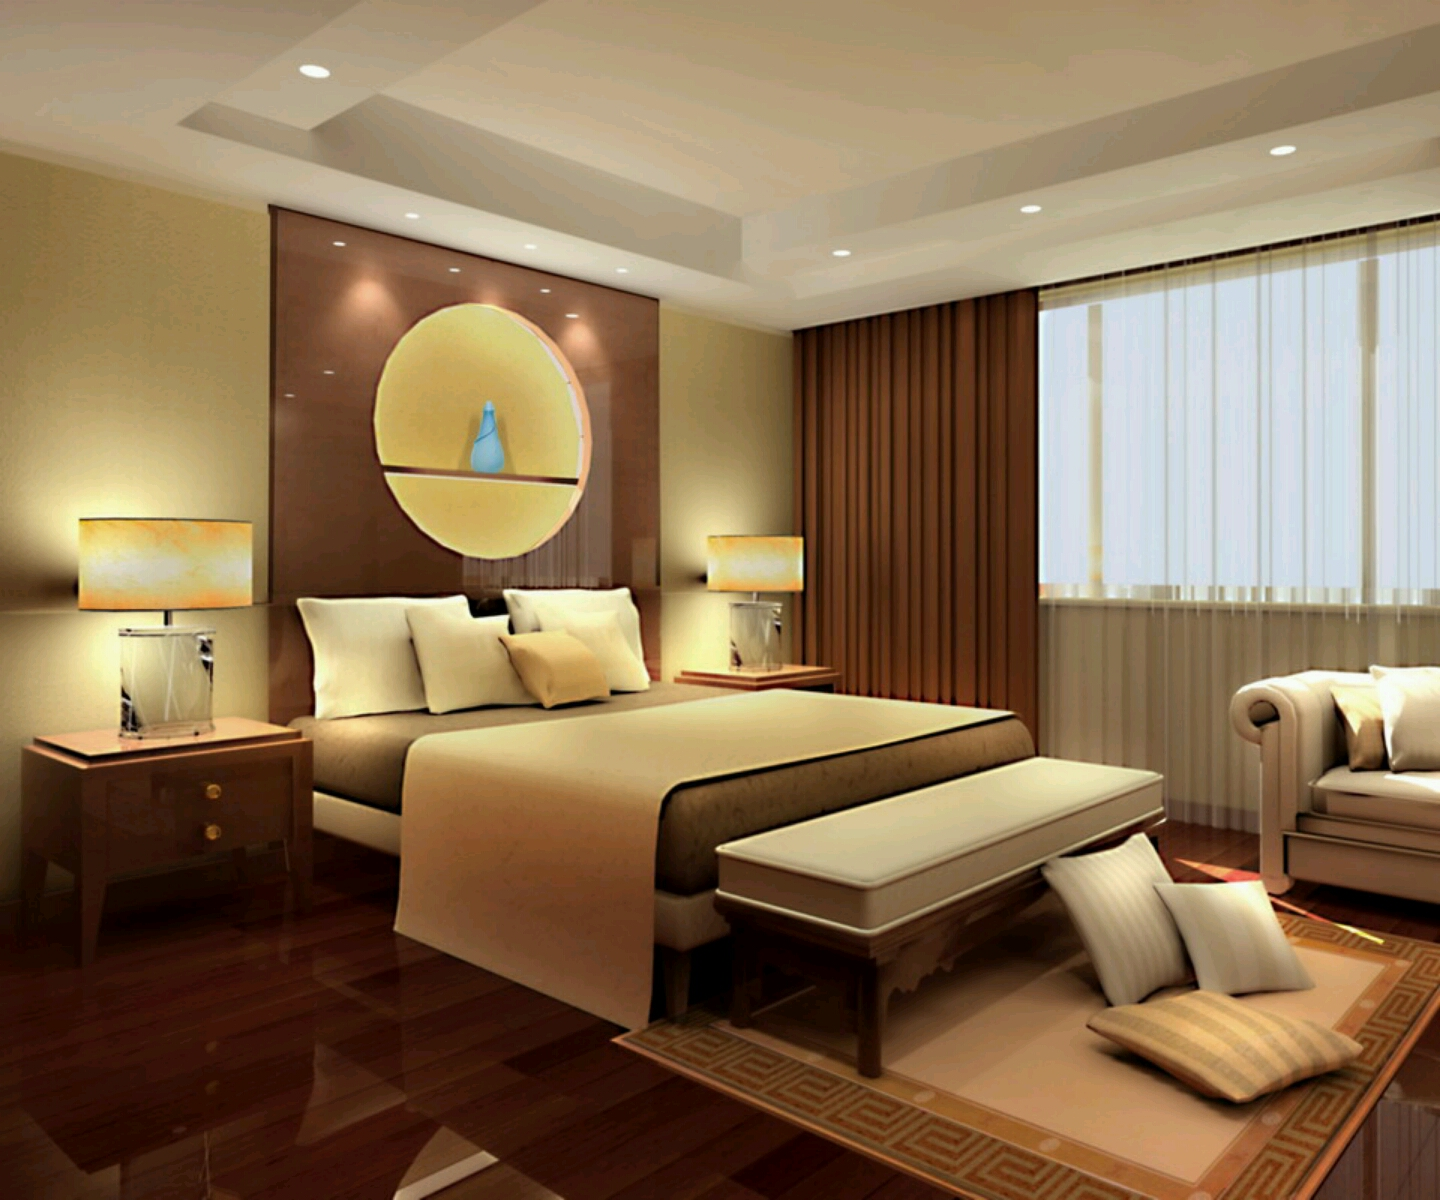 New home designs latest modern beautiful bedrooms for Latest bedroom designs